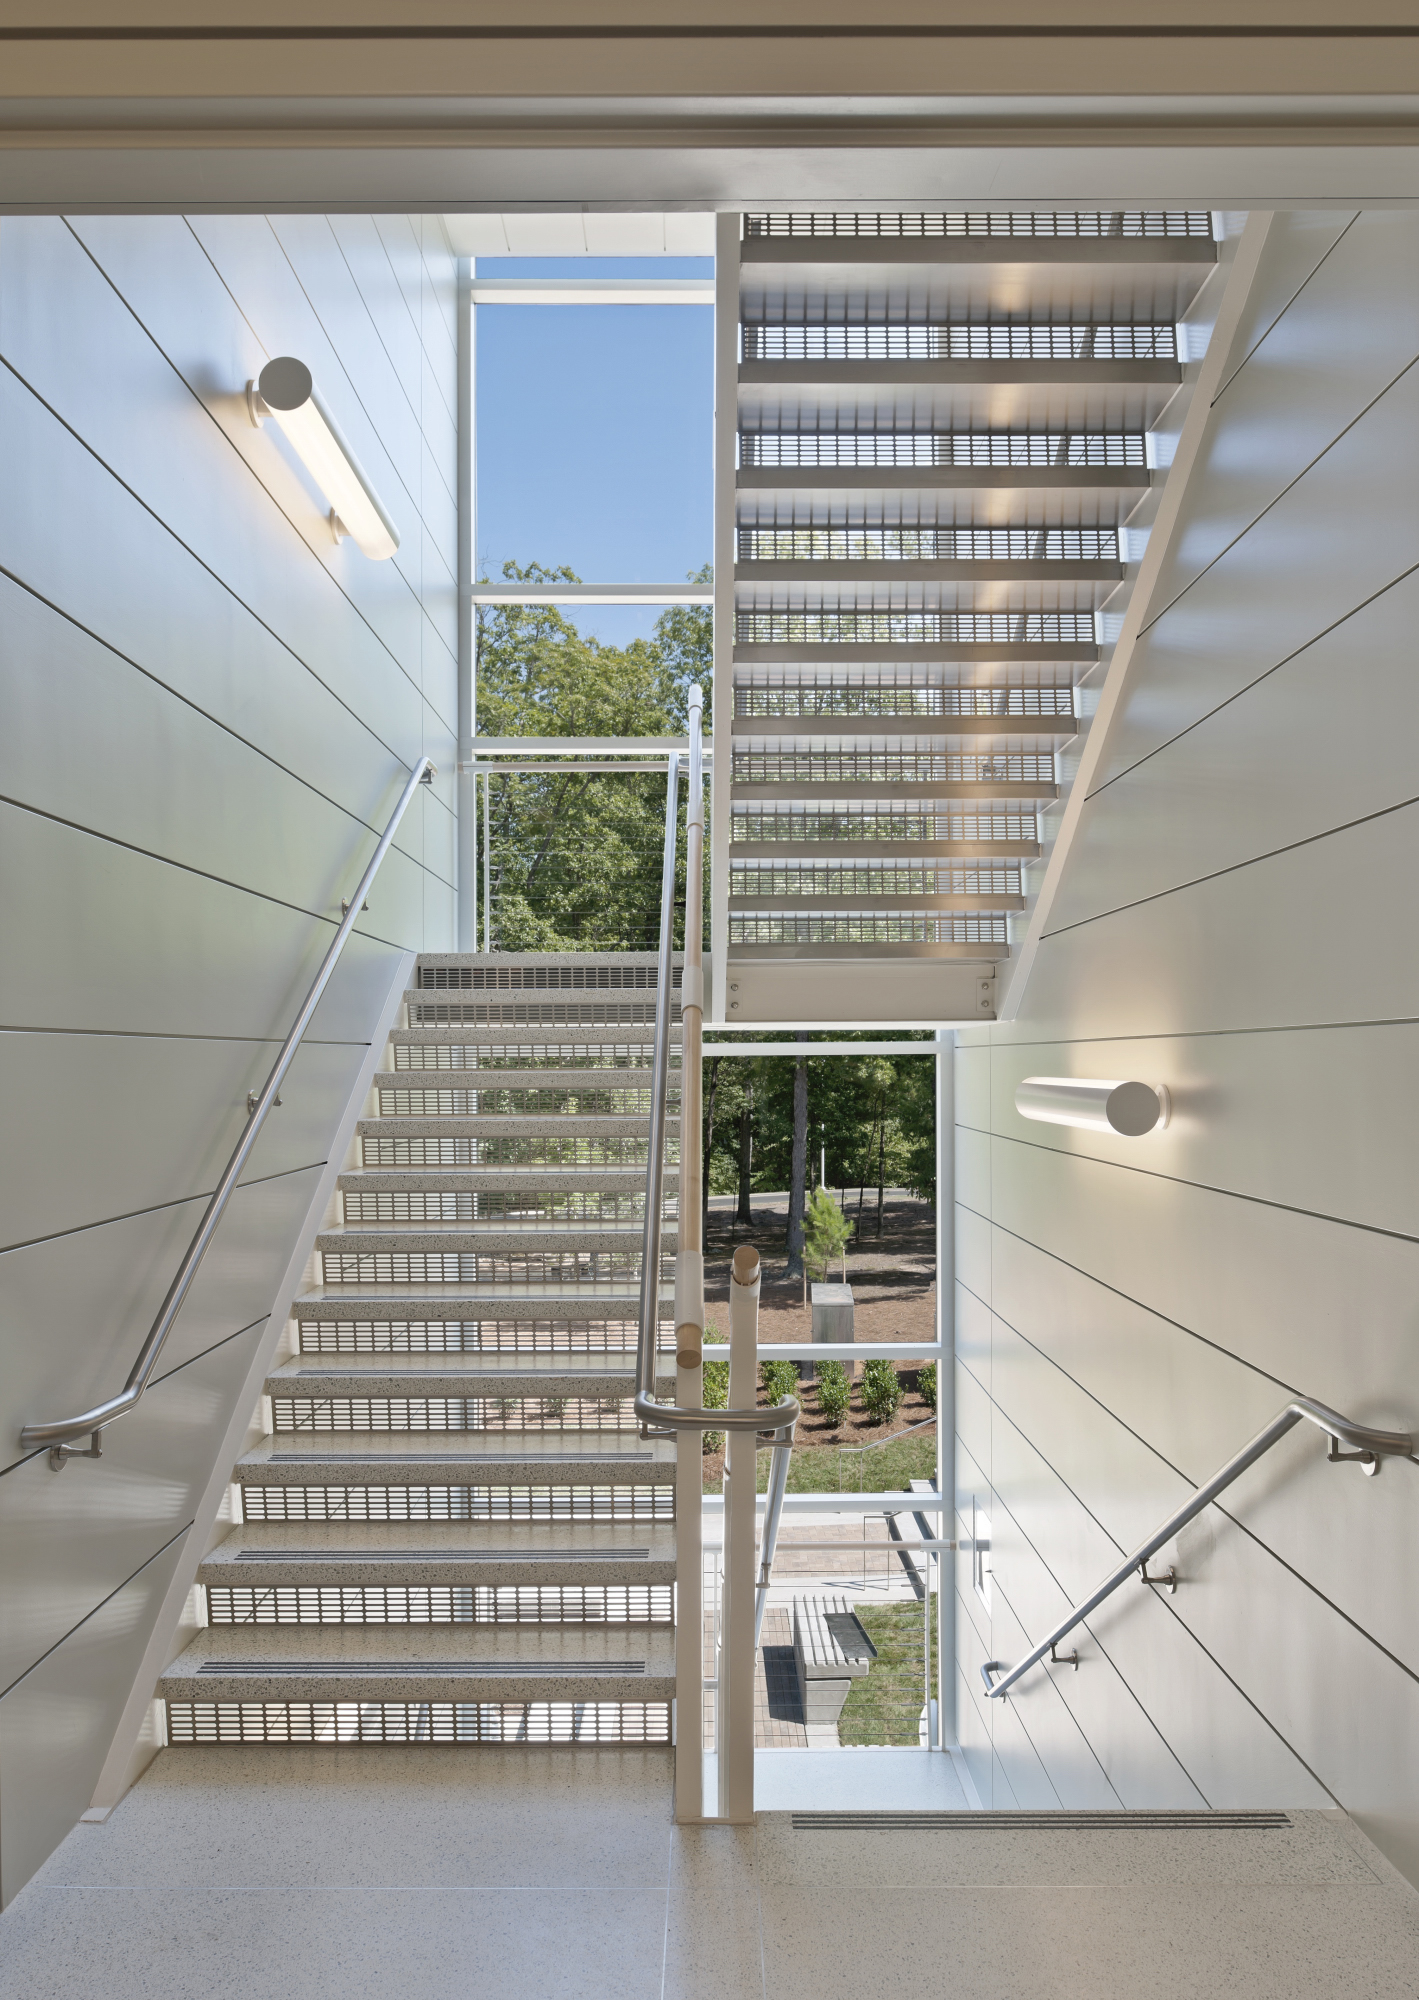 North Carolina Biotechnology Center photo | staircase view